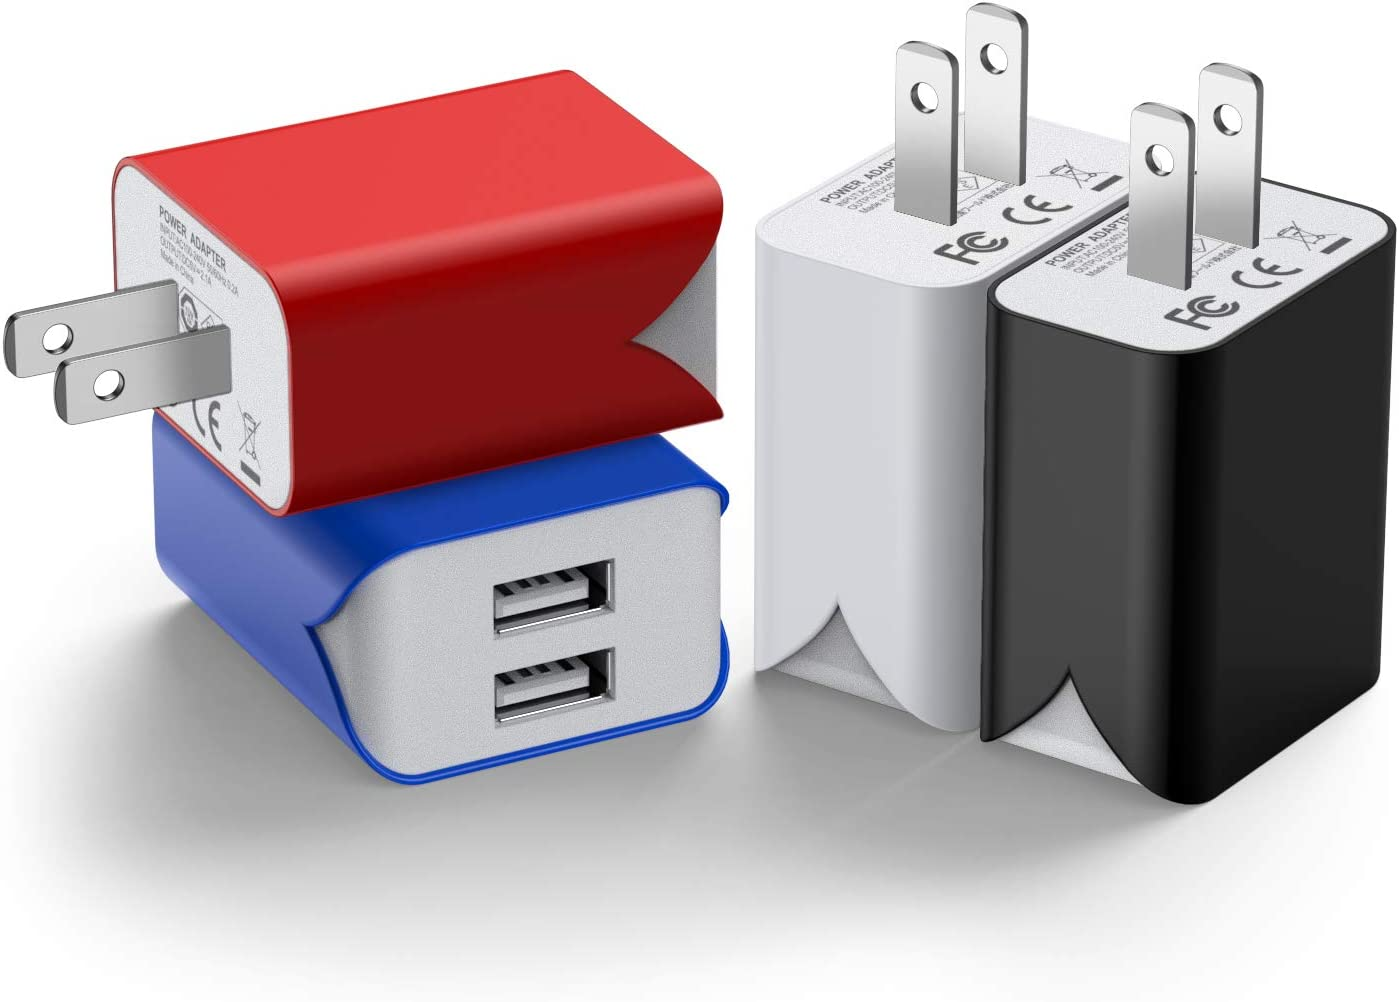 USB Wall Charger, 4 Pack 2.1A Dual Port Charging Block Power Adapter Home Plug Travel Cube Compatible iPhone 11 Xs Max Xr X 8 iPad Air Samsung Galaxy S10 S9 Note 9 8 Kindle